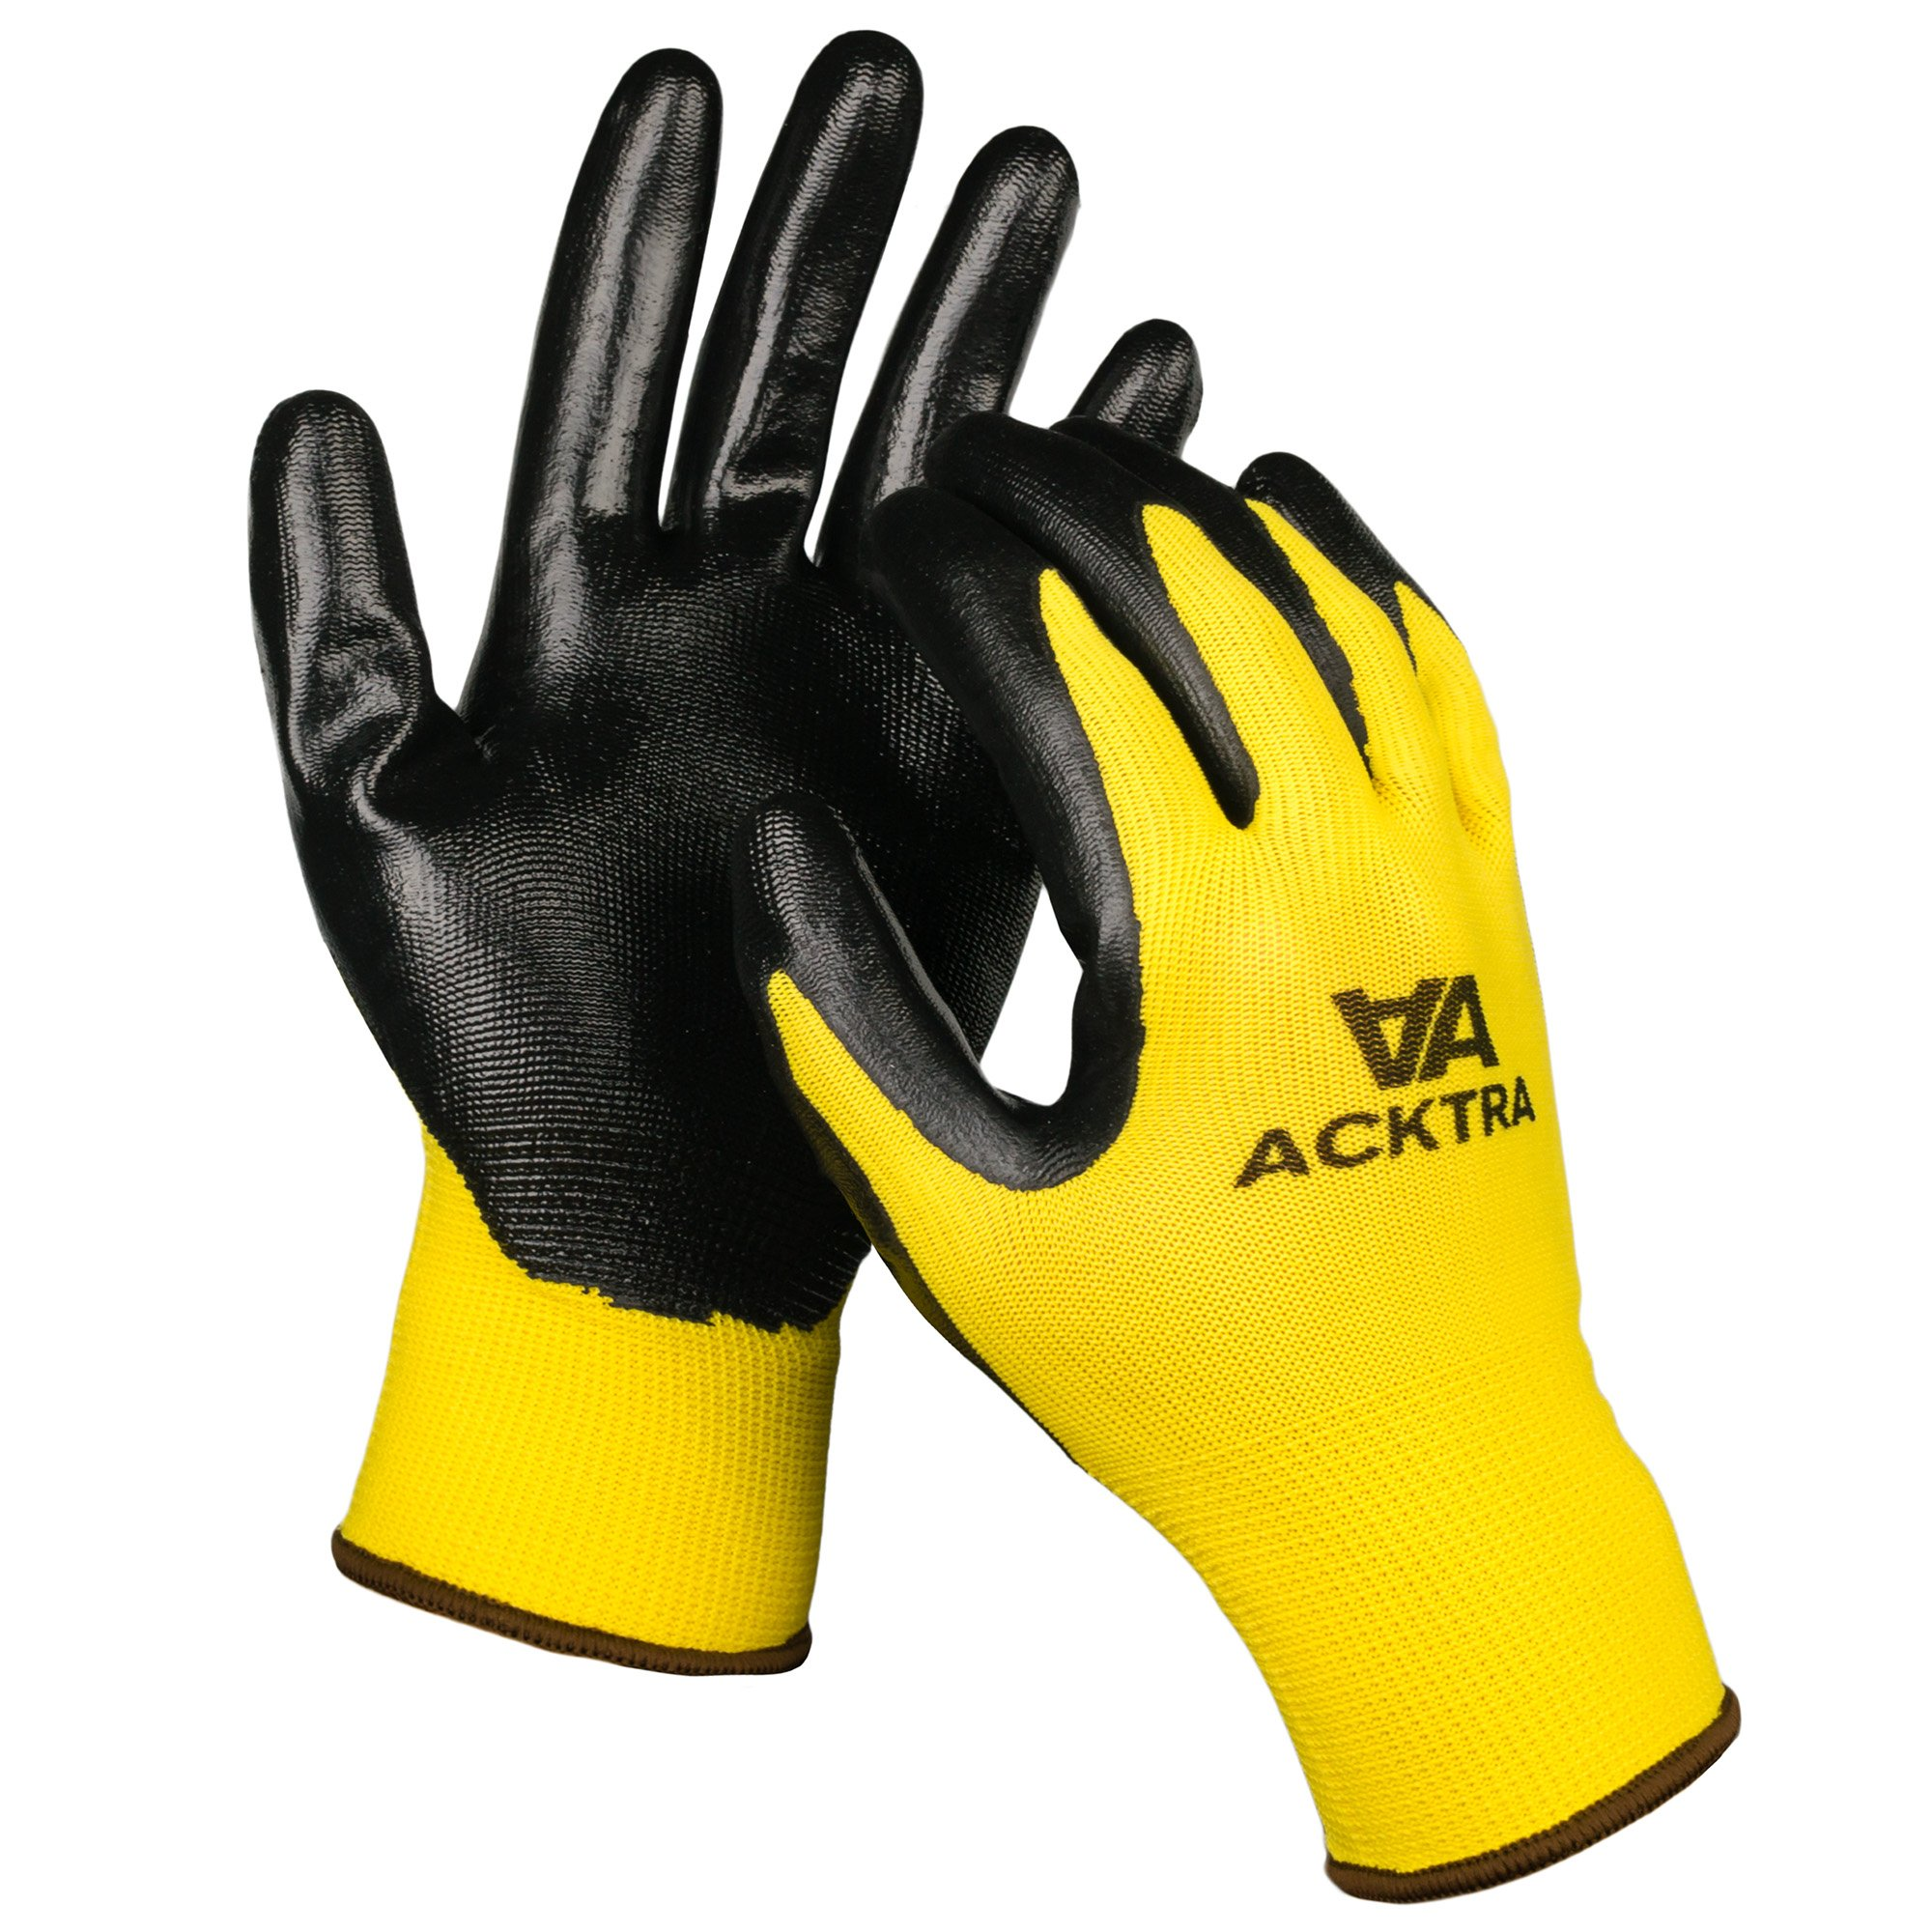 ACKTRA Nitrile Coated Nylon Safety WORK GLOVES 12 Pairs, Knit Wrist Cuff, Multipurpose, for Men & Women, WG003 Black Polyester, Black Nitrile, Small 3